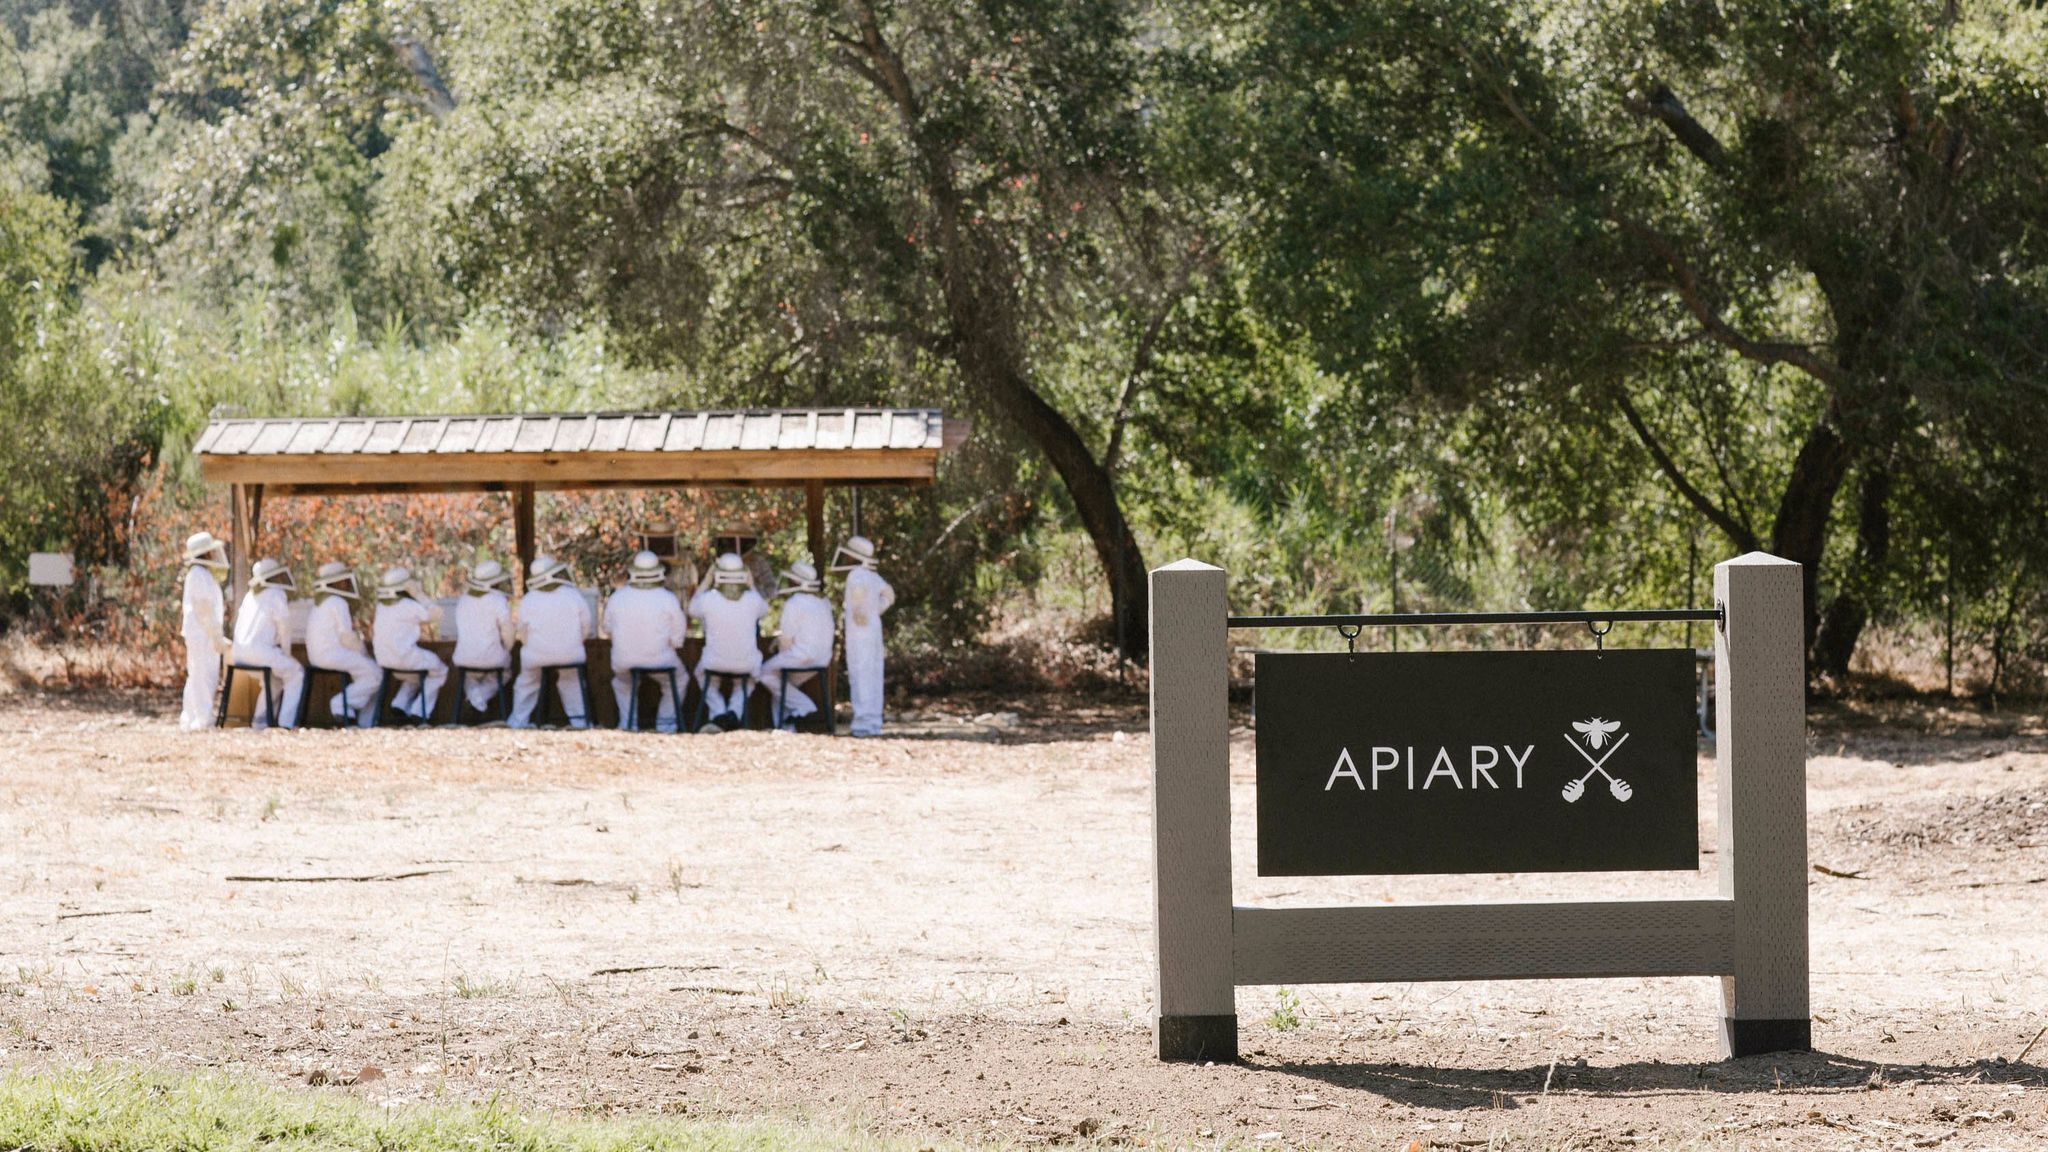 Guests of the Ojai Valley Inn & Spa don beekeeper suits at the resort's apiary. For $150, guests learn about bees and taste the honey they make.